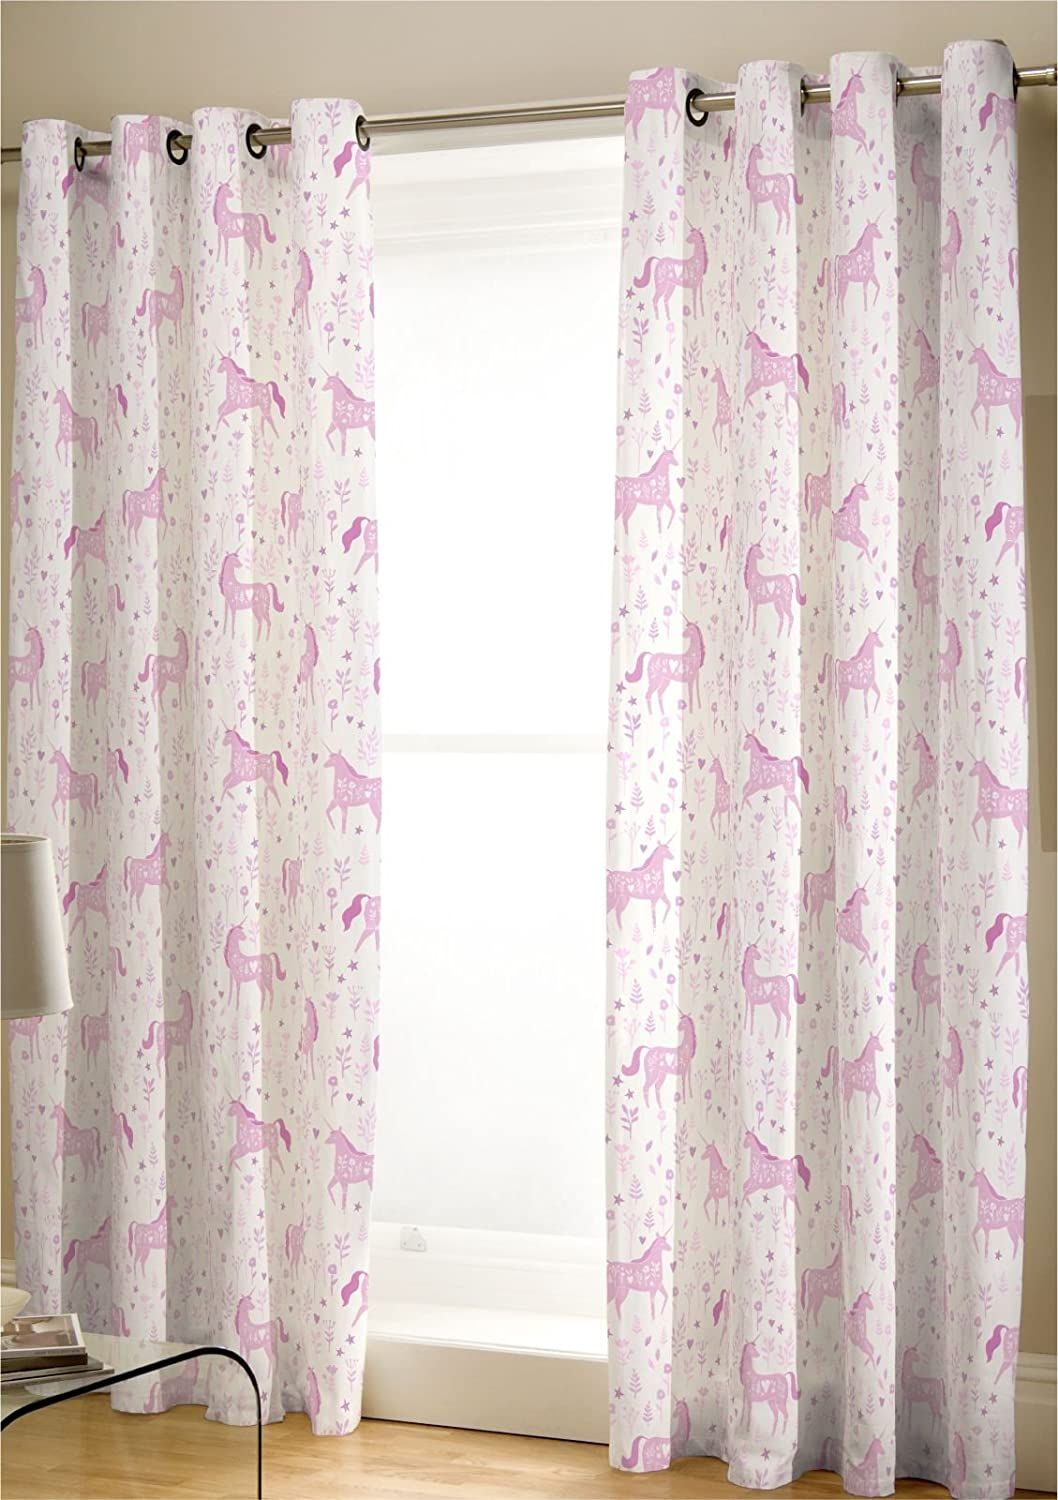 Catherine Lansfield Folk Unicorn Easy Care Eyelet Curtains Pink, 66x72 Inch Turner Bianca BD/45562/W/E6672/PK